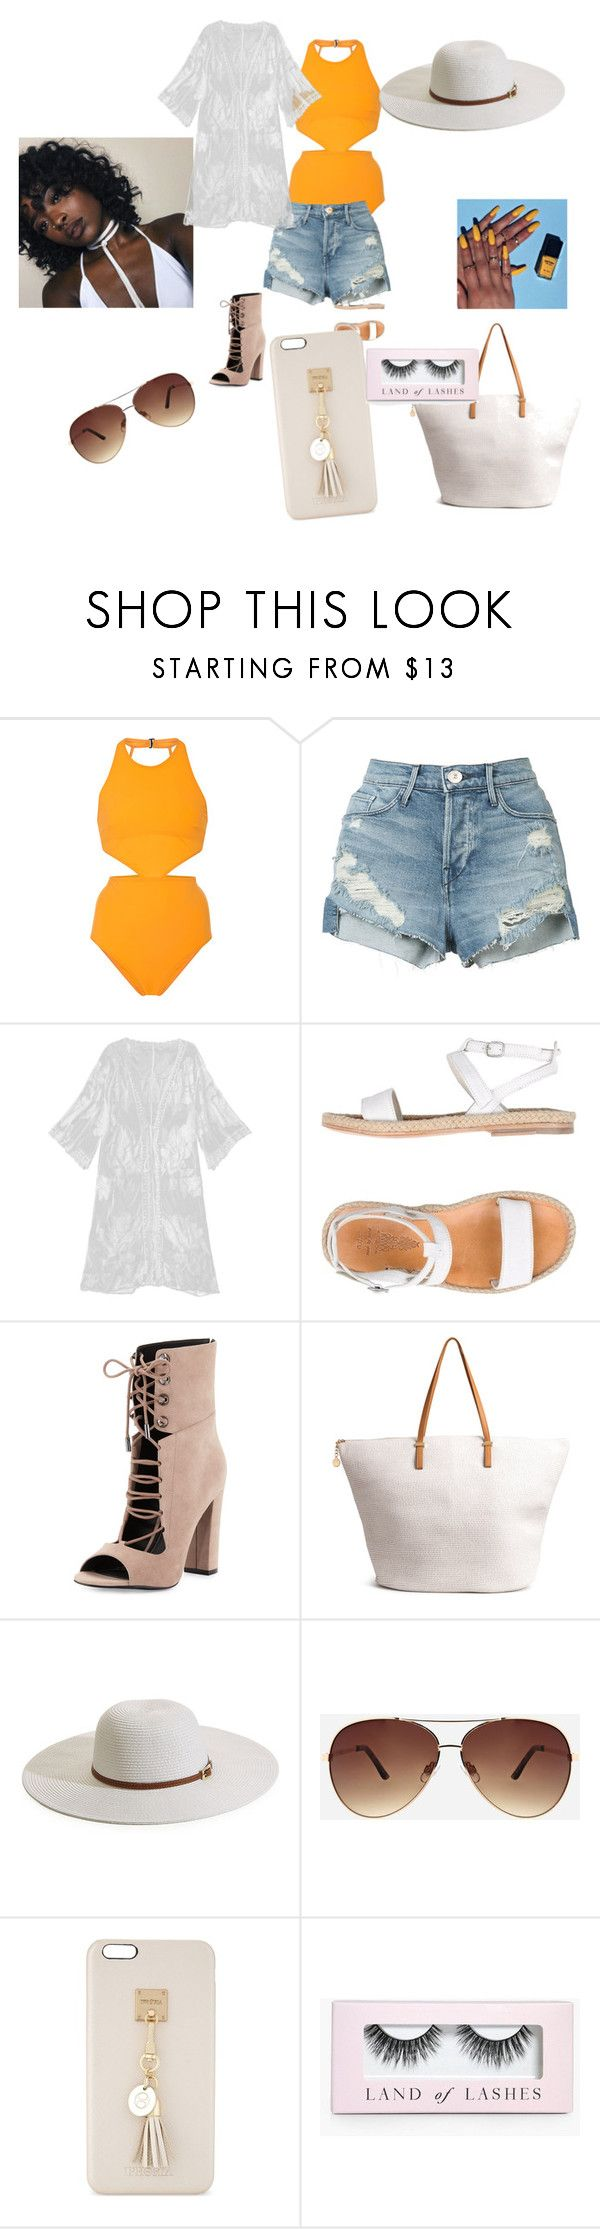 """A  lil melenin at the beach"" by ziyah-mesy on Polyvore featuring Flagpole, 3x1, n.d.c., Kendall + Kylie, H&M, Melissa Odabash, Ashley Stewart, Iphoria and Boohoo"